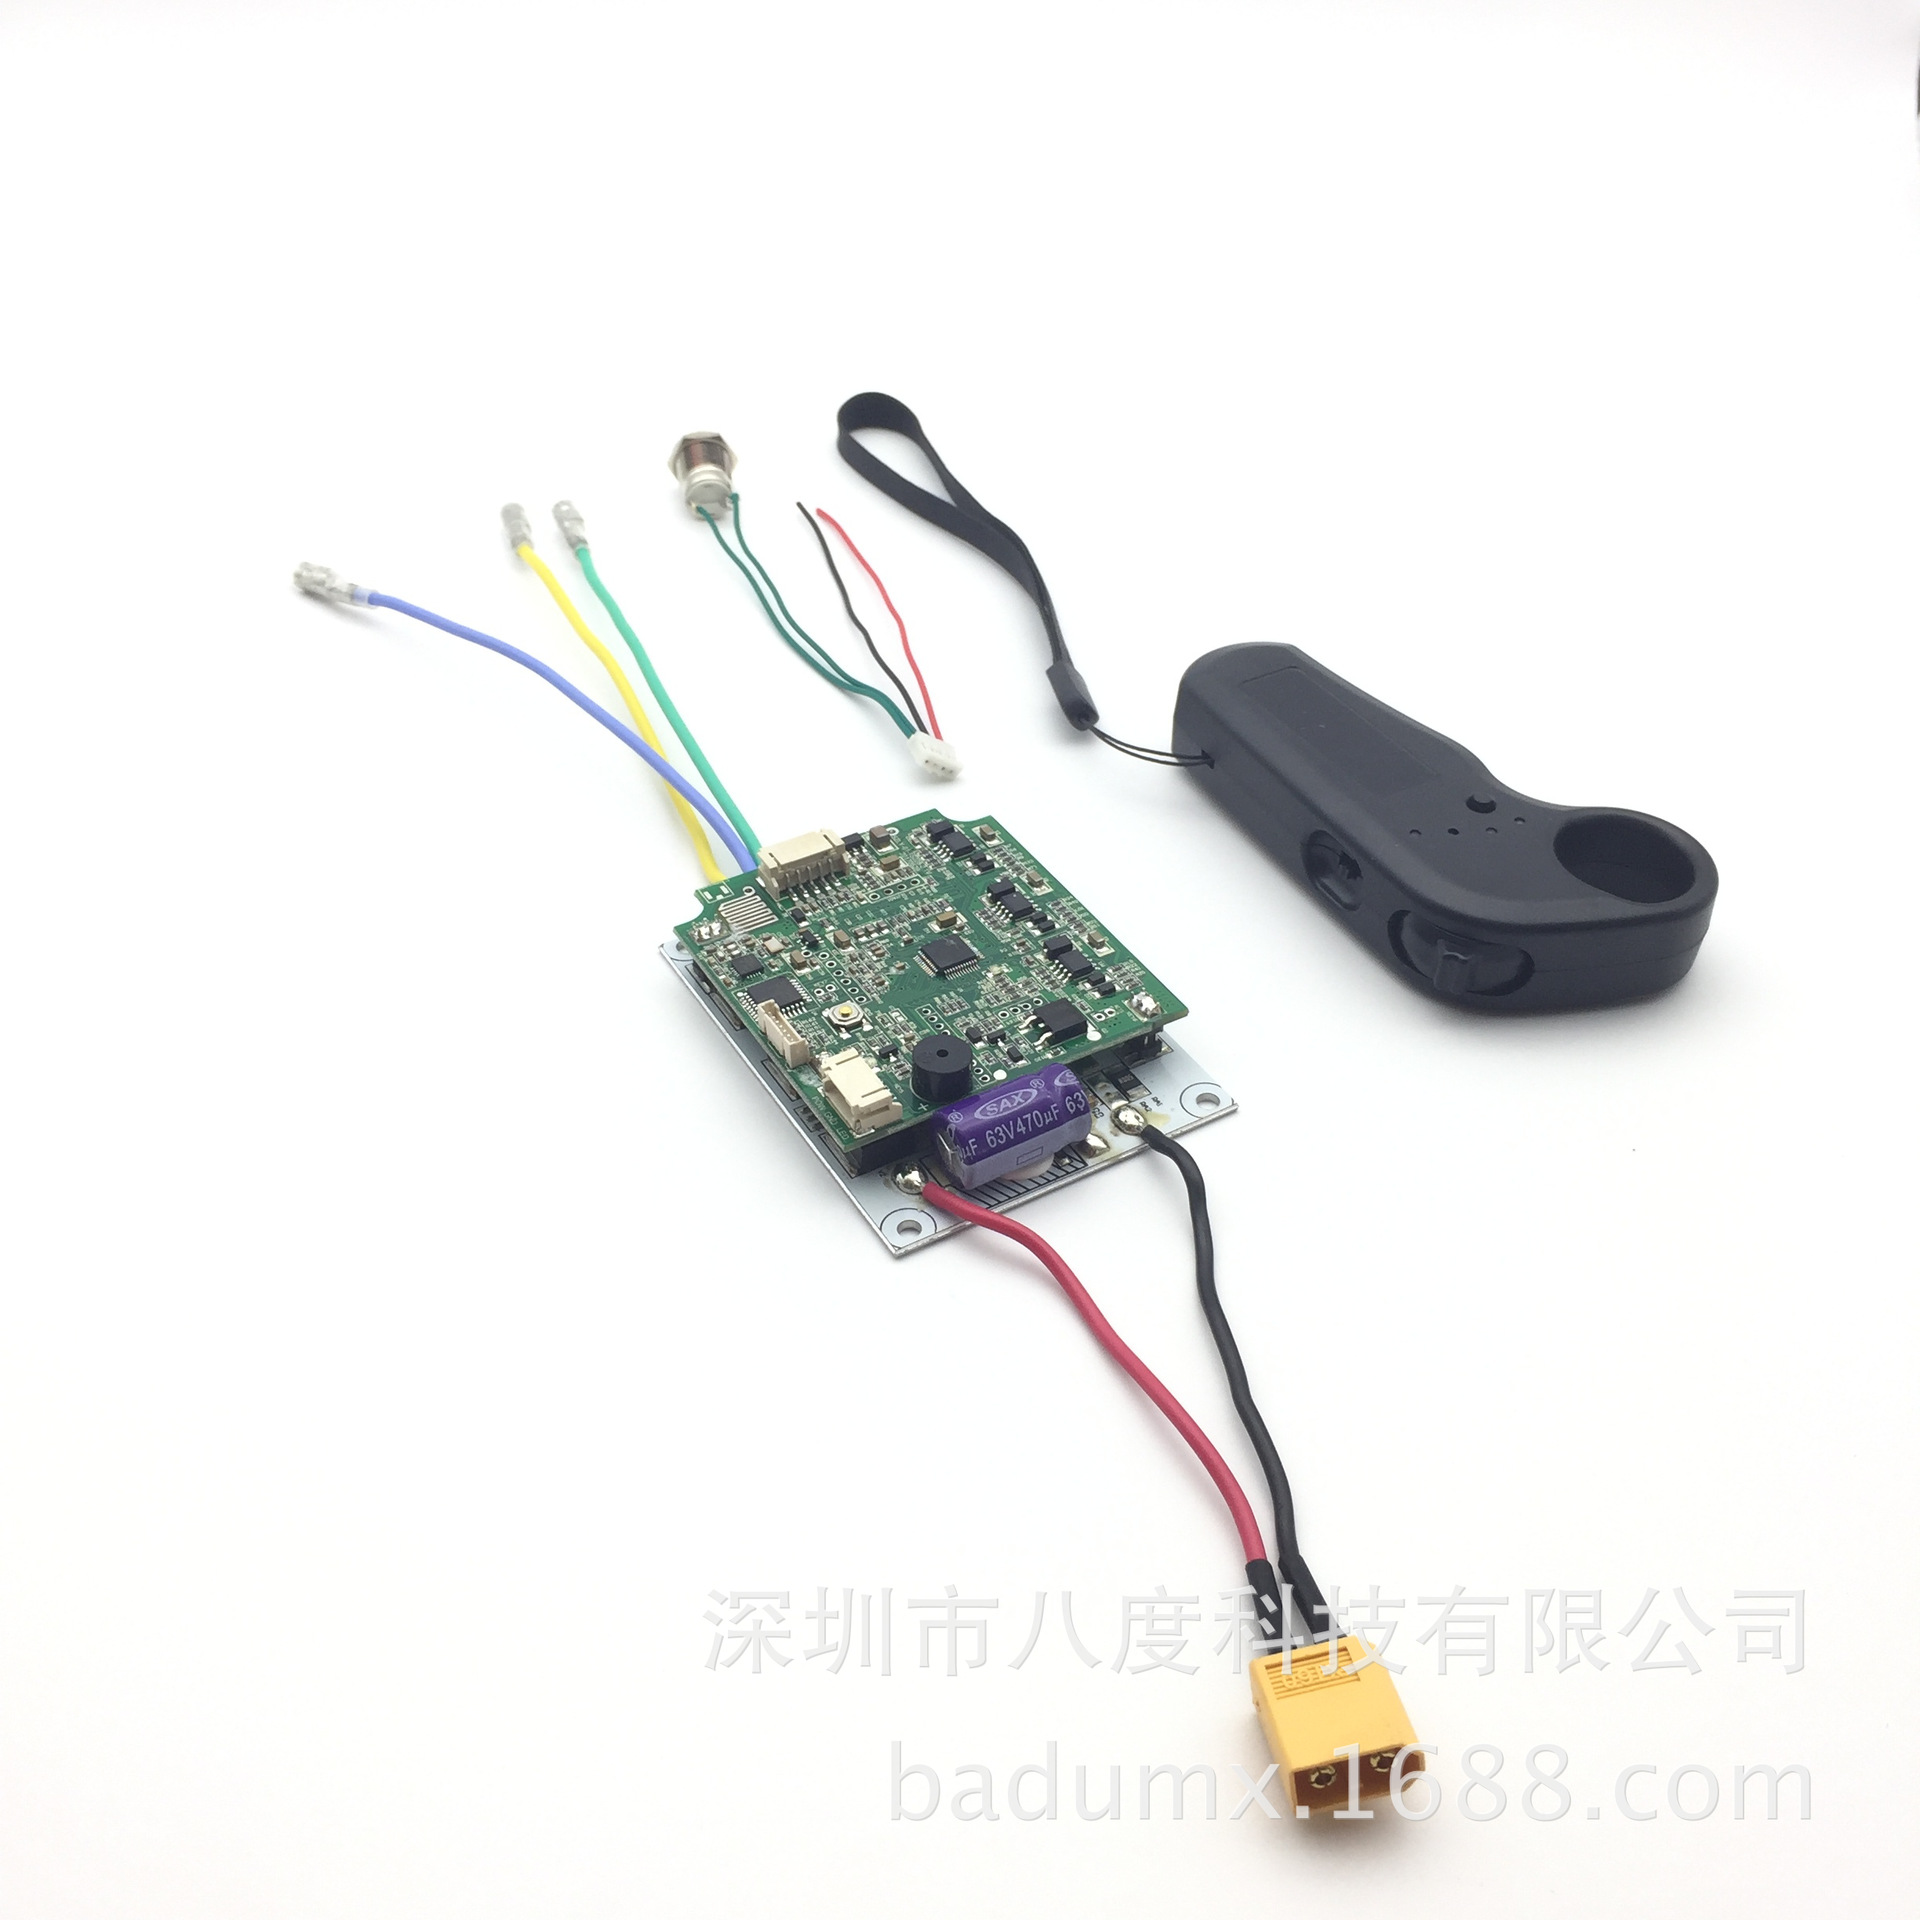 Remote Control Electric Four-wheel Scooter Dual-Drive Single Driving Controller Motor Brushless DC Scooter Wheel Hub Speed Gover